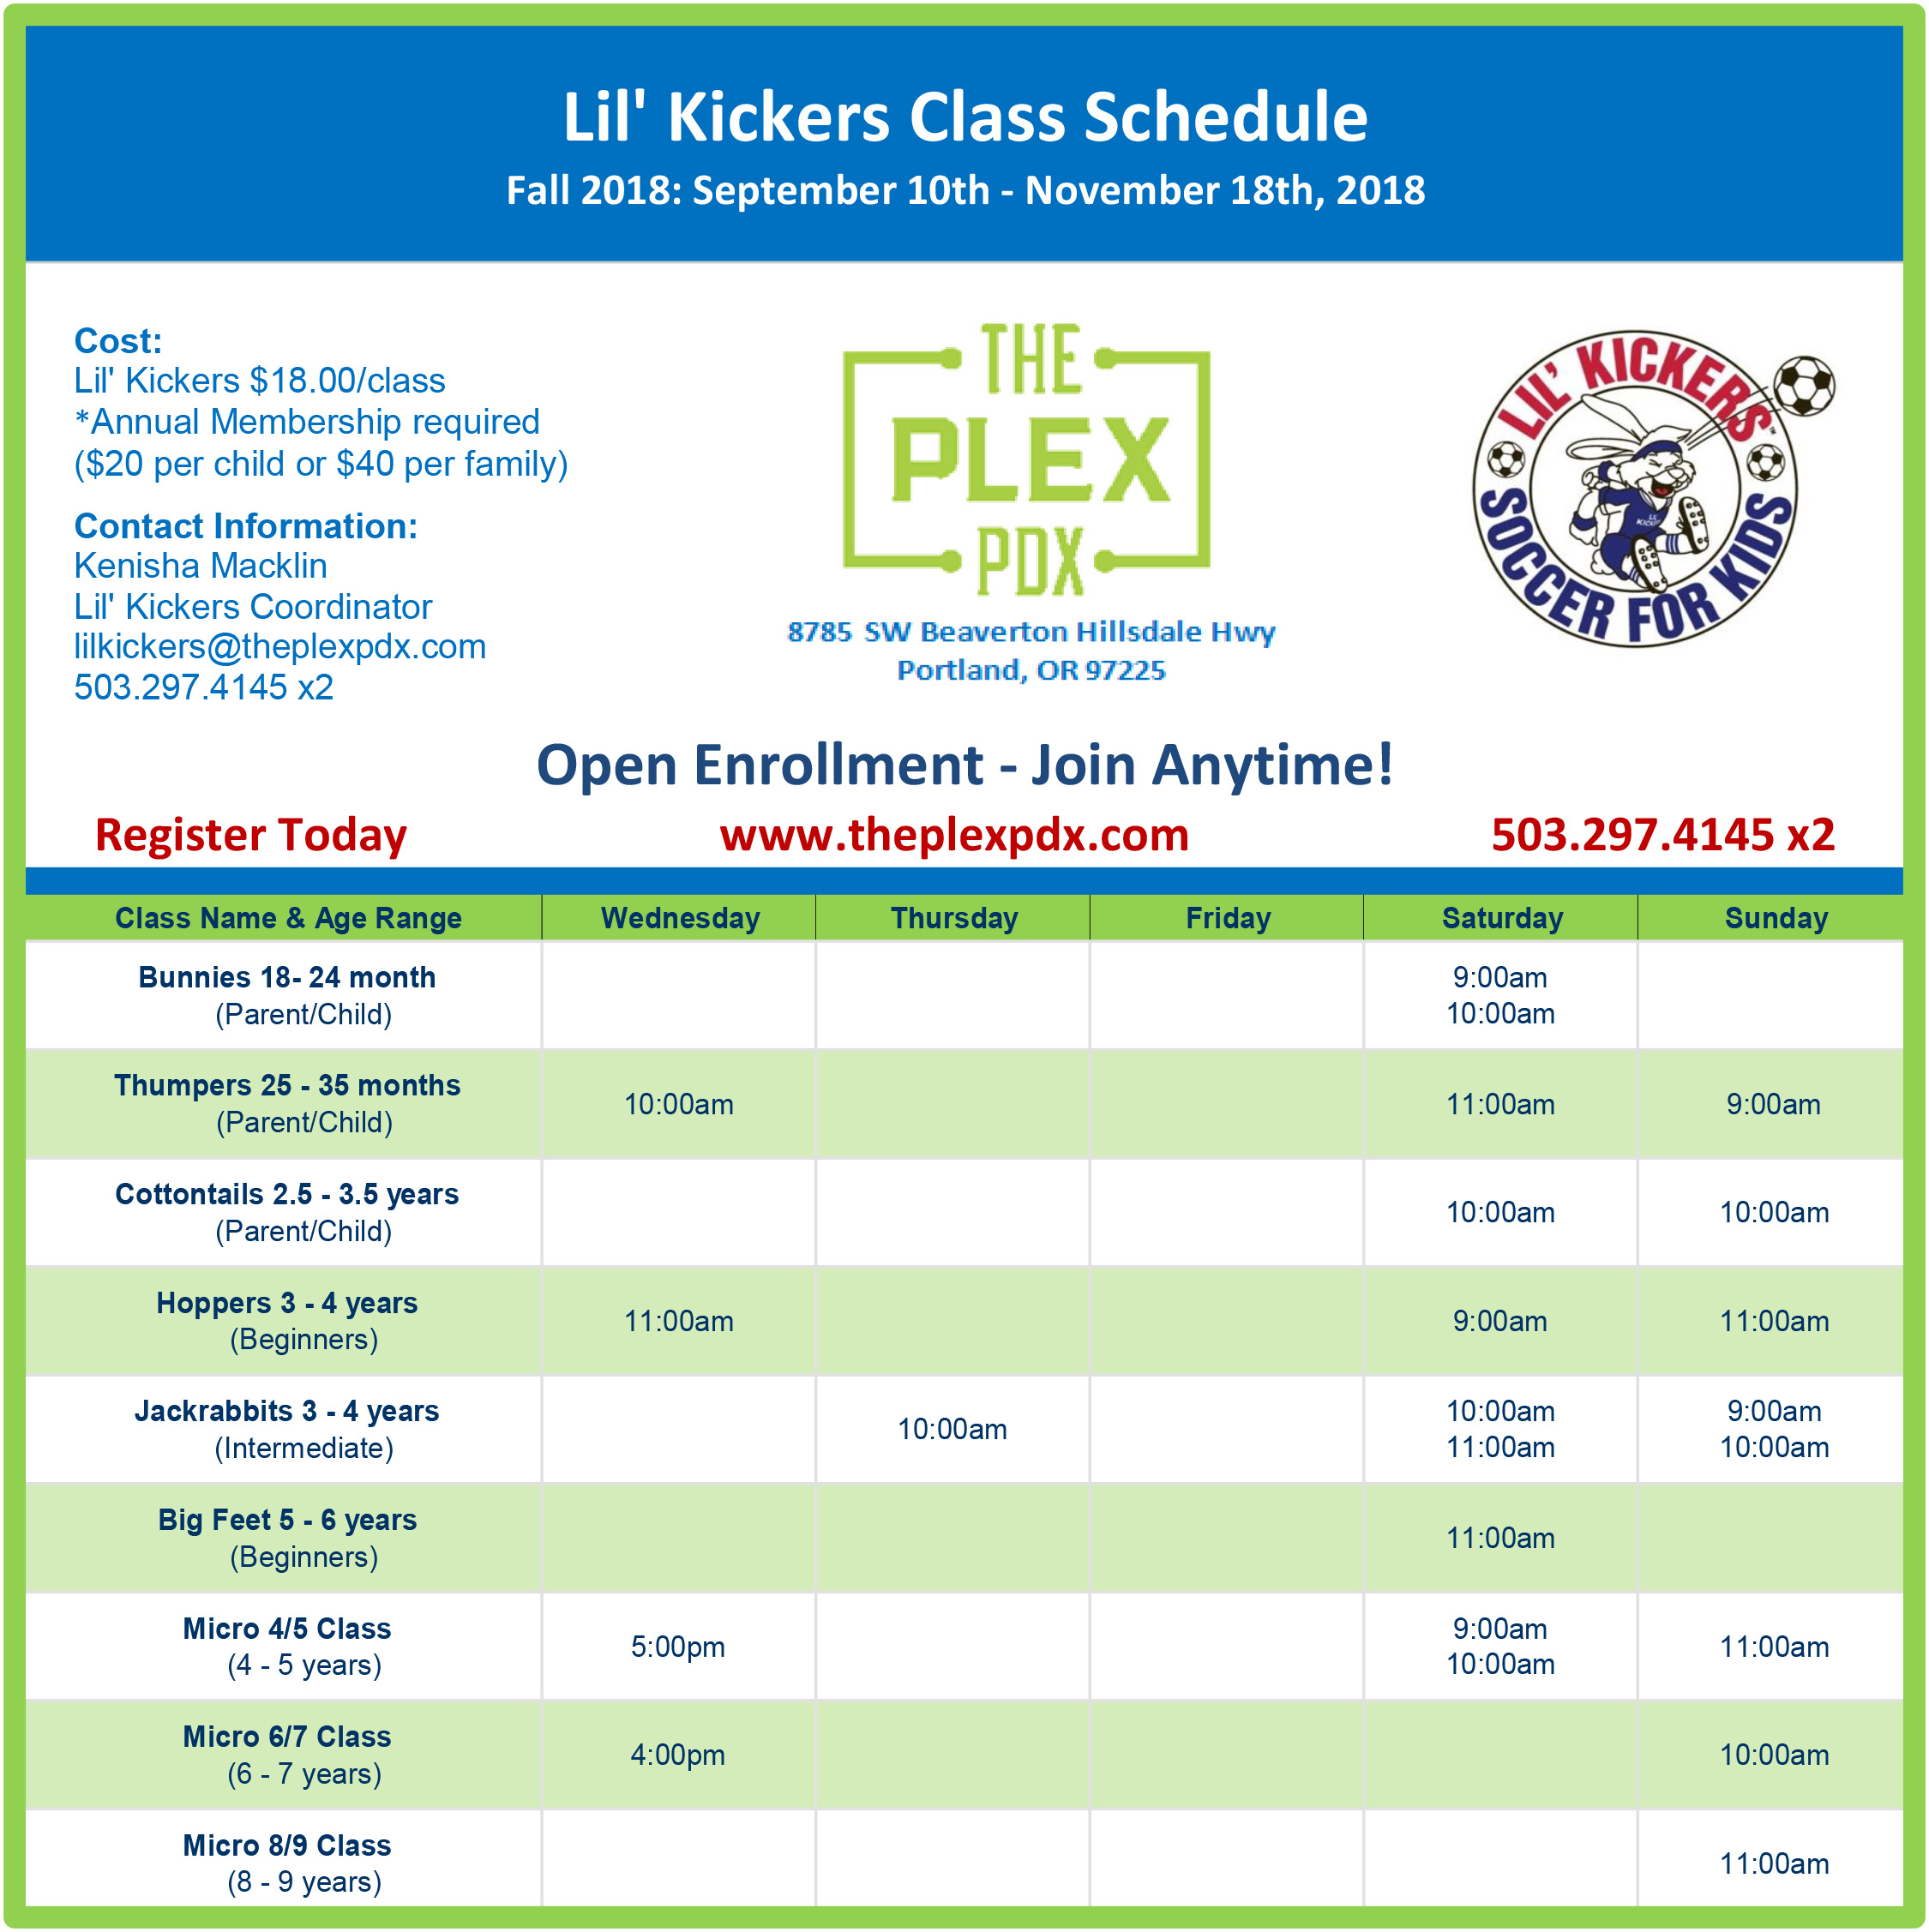 Fall 2018 Plex LK - Website